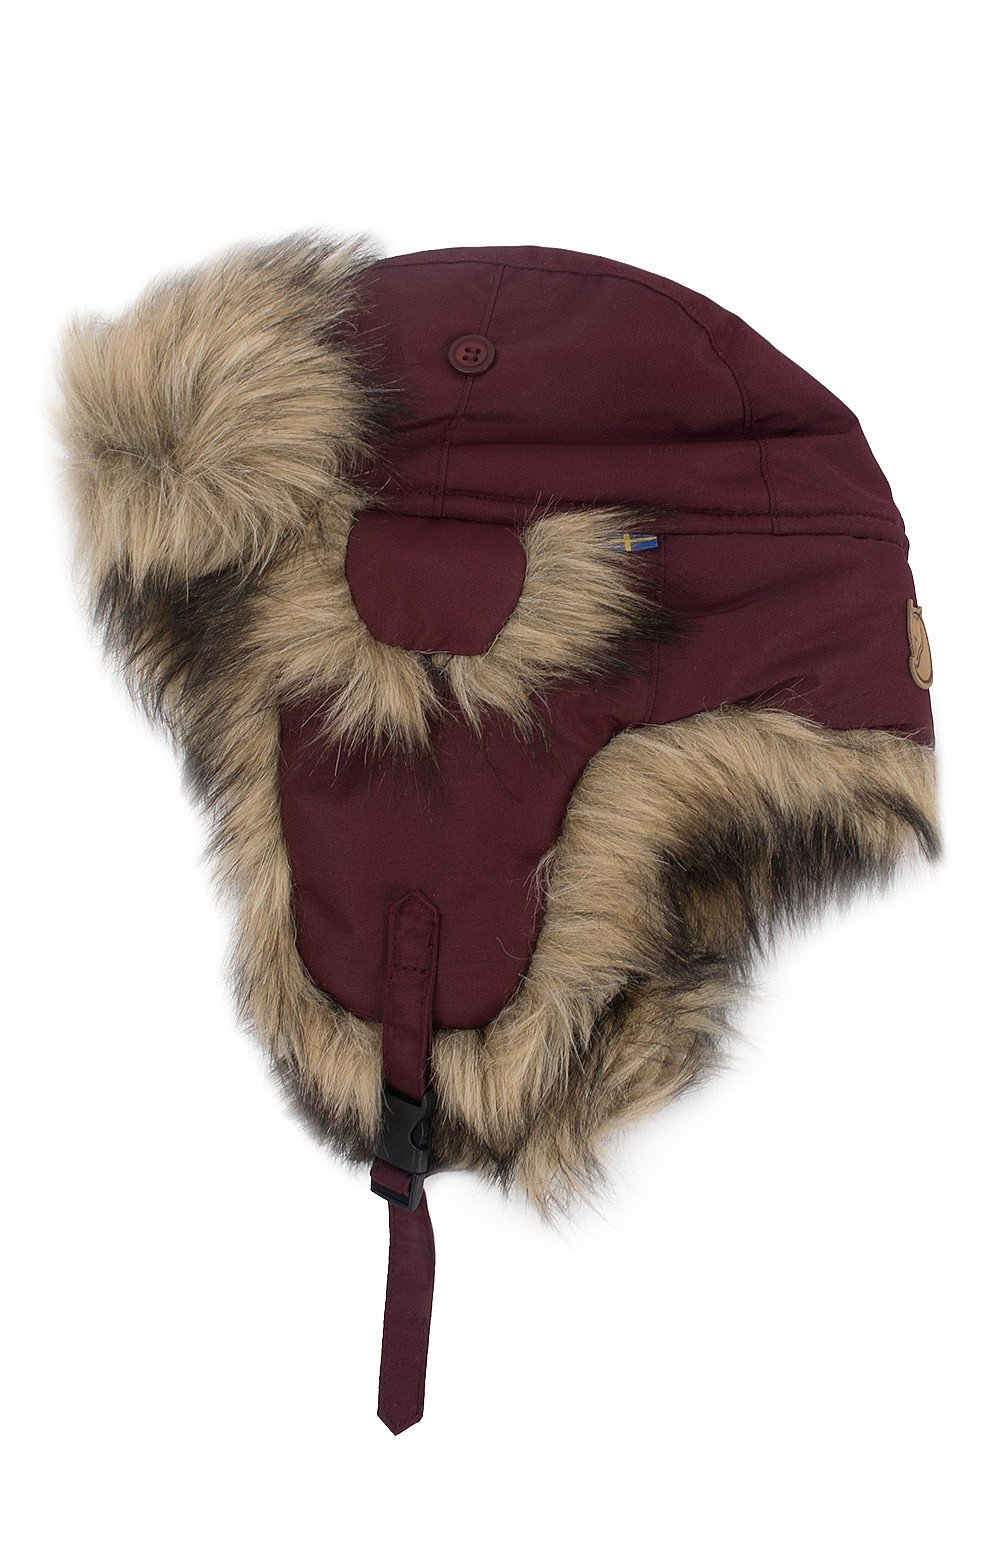 4aa623c2 Fjallraven Nordic Heater Hat | Men's Hats | House Of Bruar